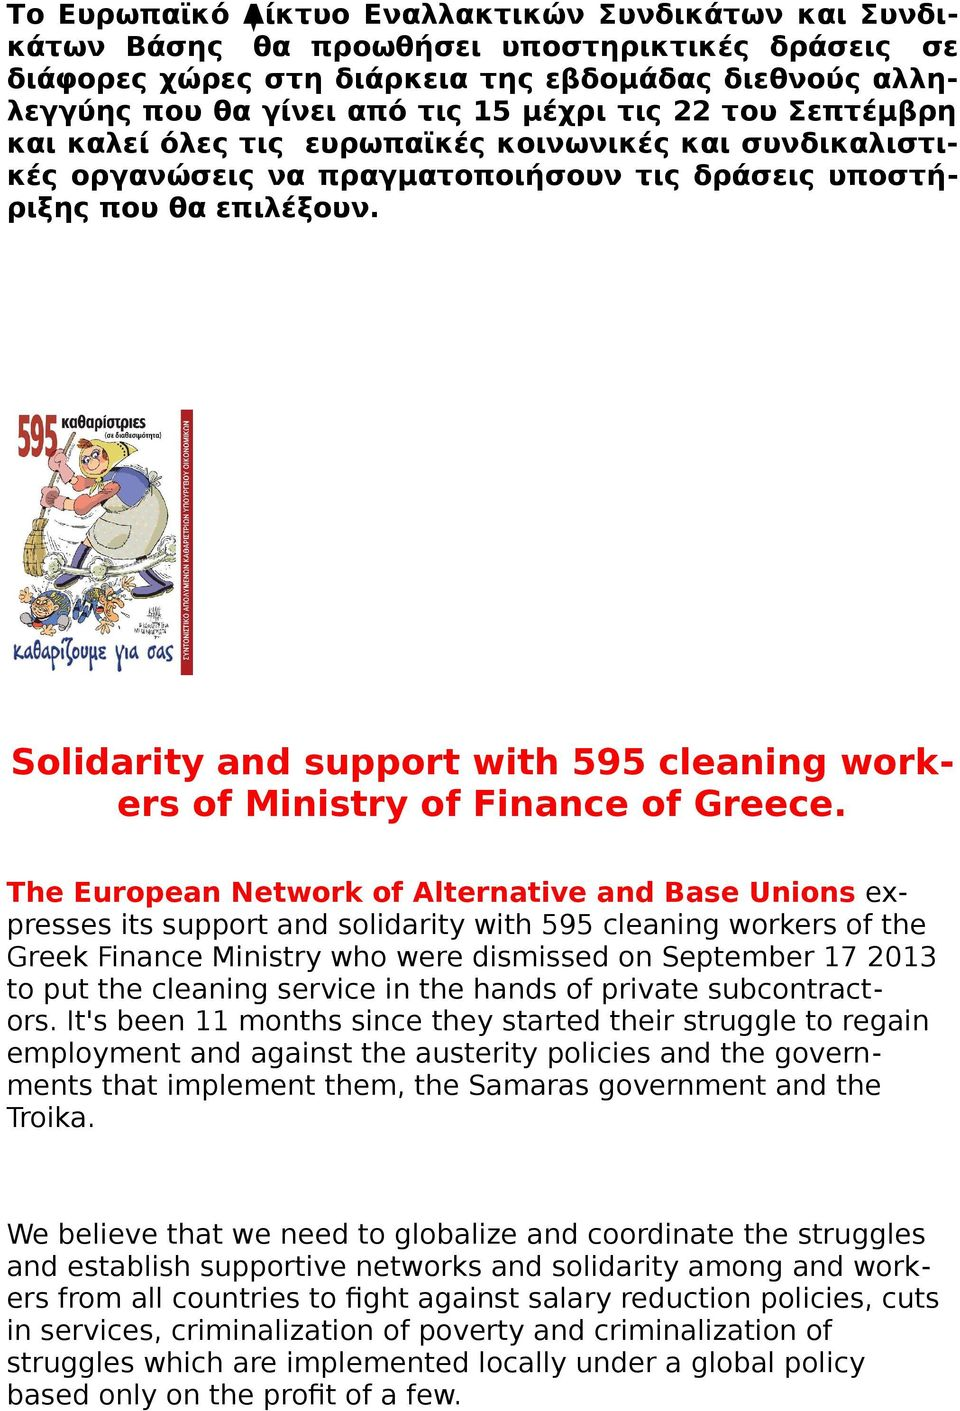 Solidarity and support with 595 cleaning workers of Ministry of Finance of Greece.